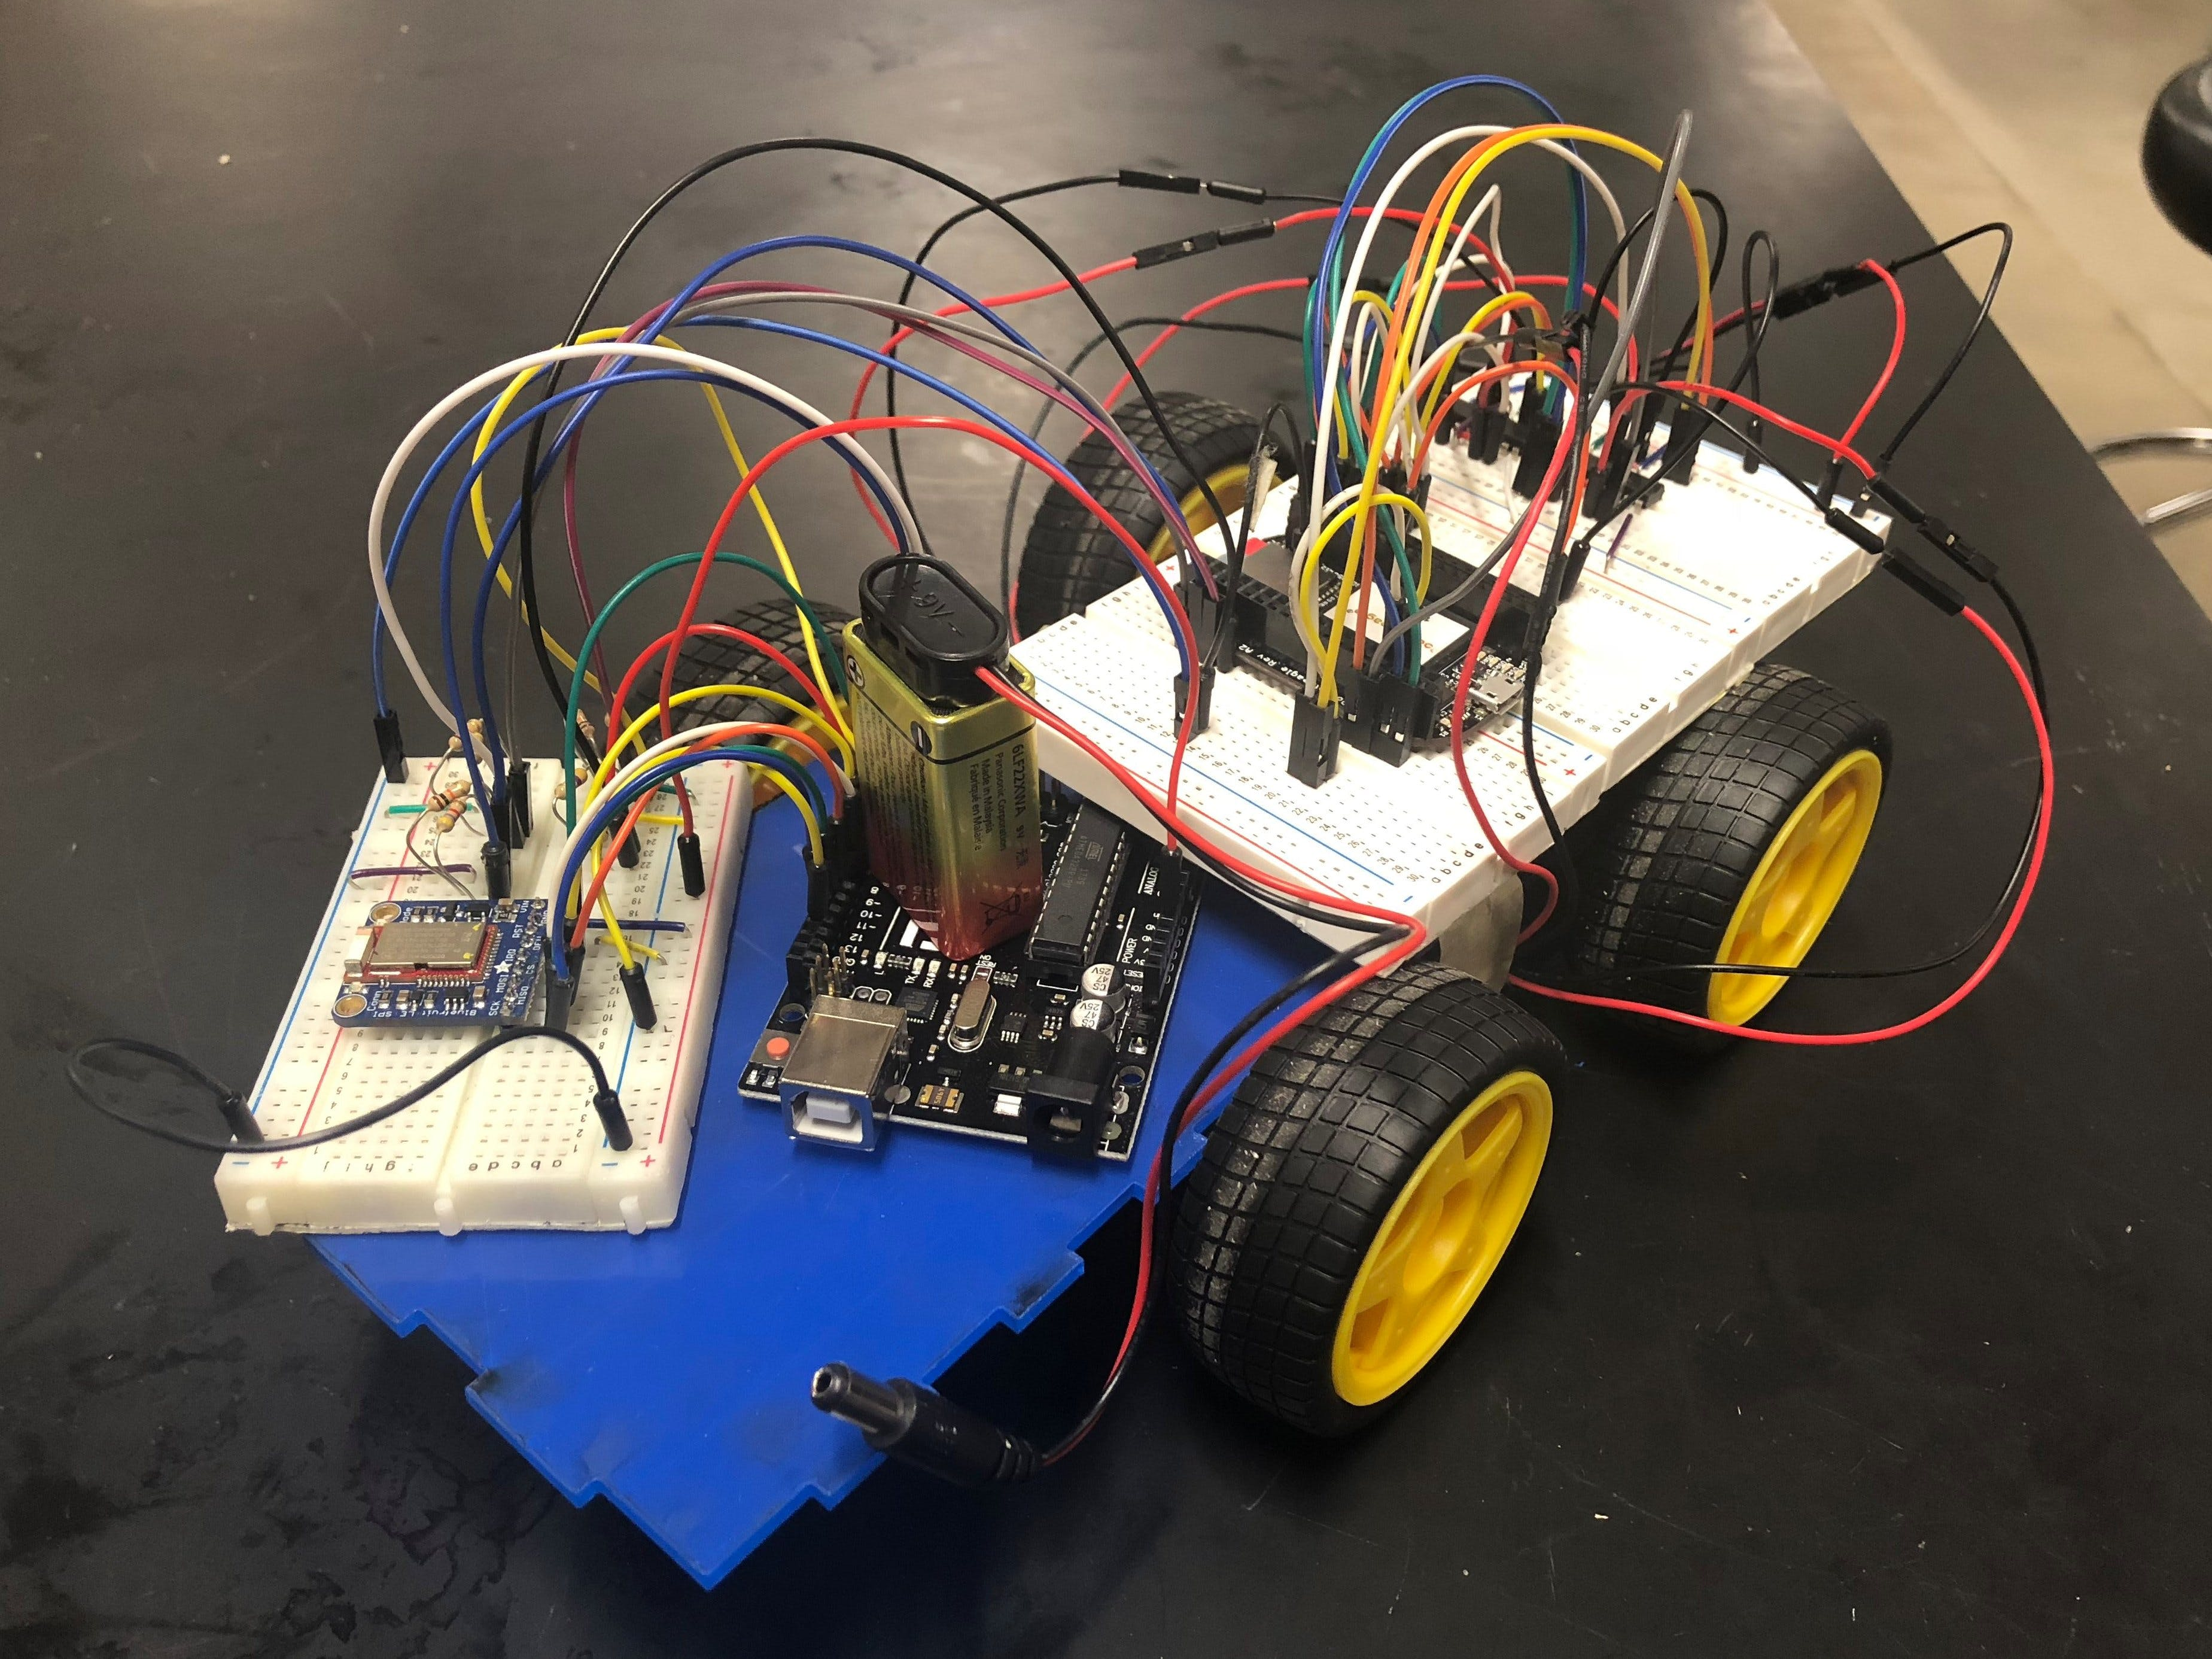 Remote Control Car w/ PocketBeagle and Arduino